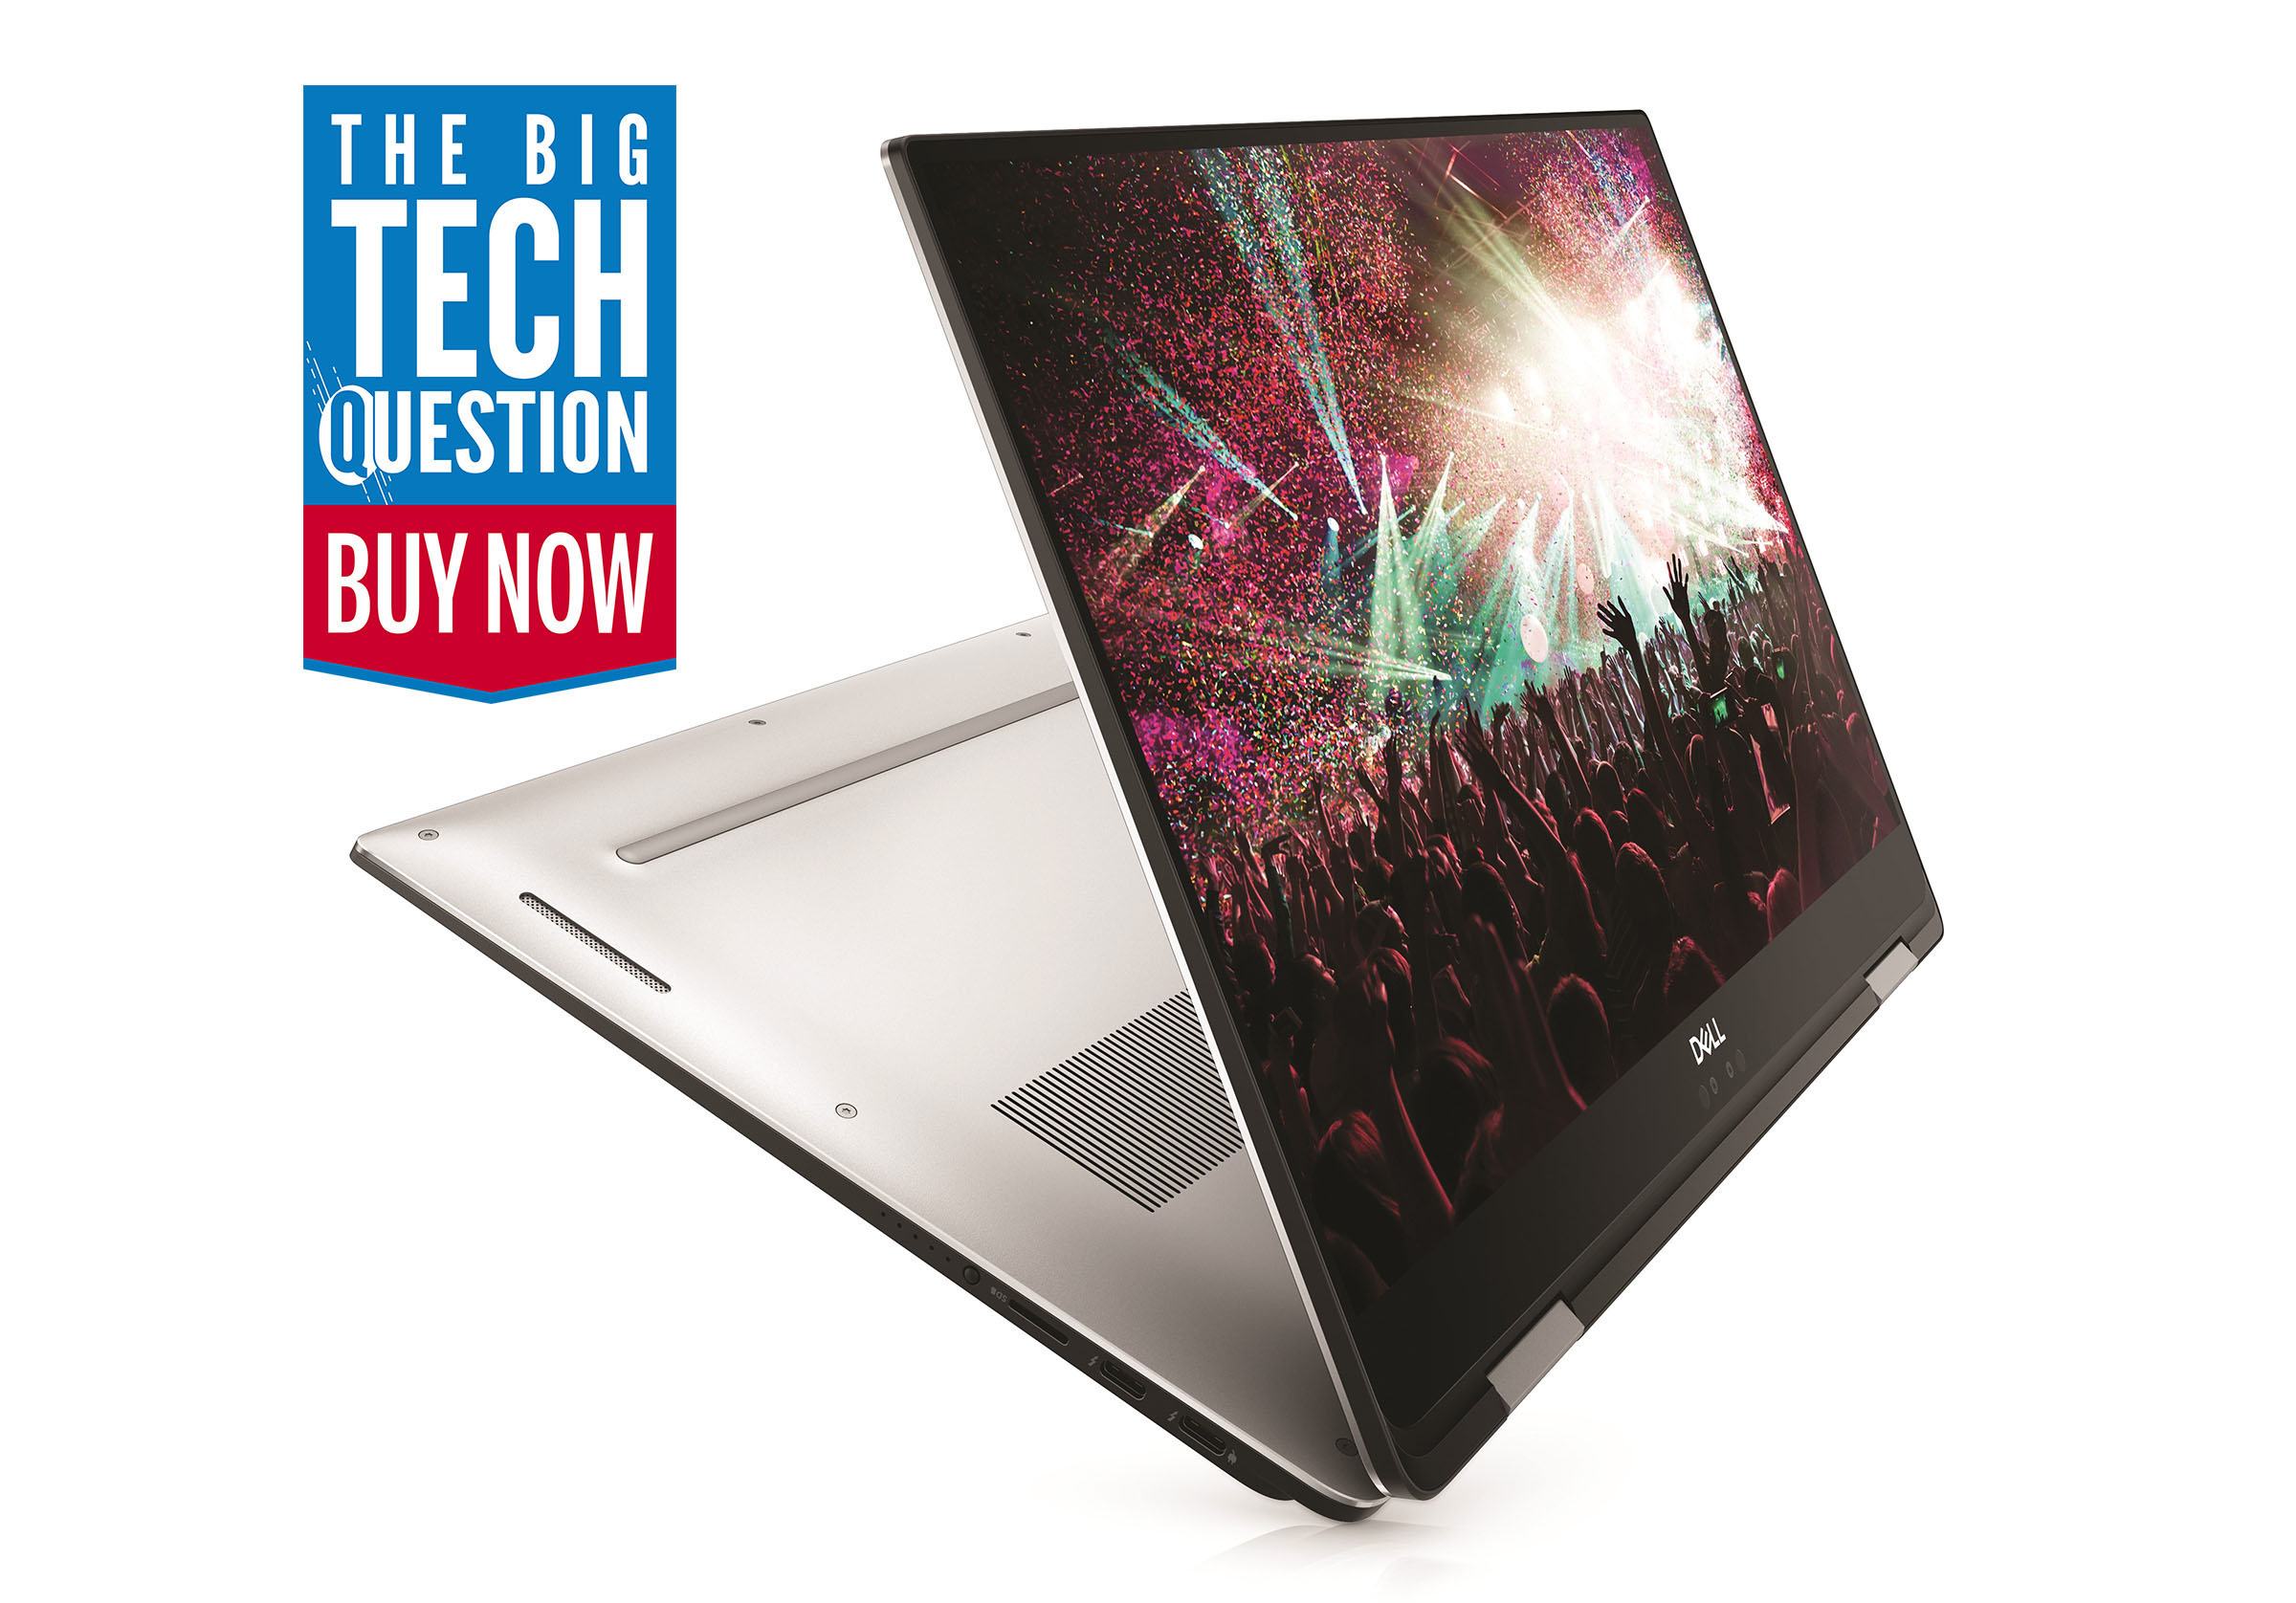 Dell Xps 15 2 In 1 Review Too Flipping Expensive The Big Tech Question